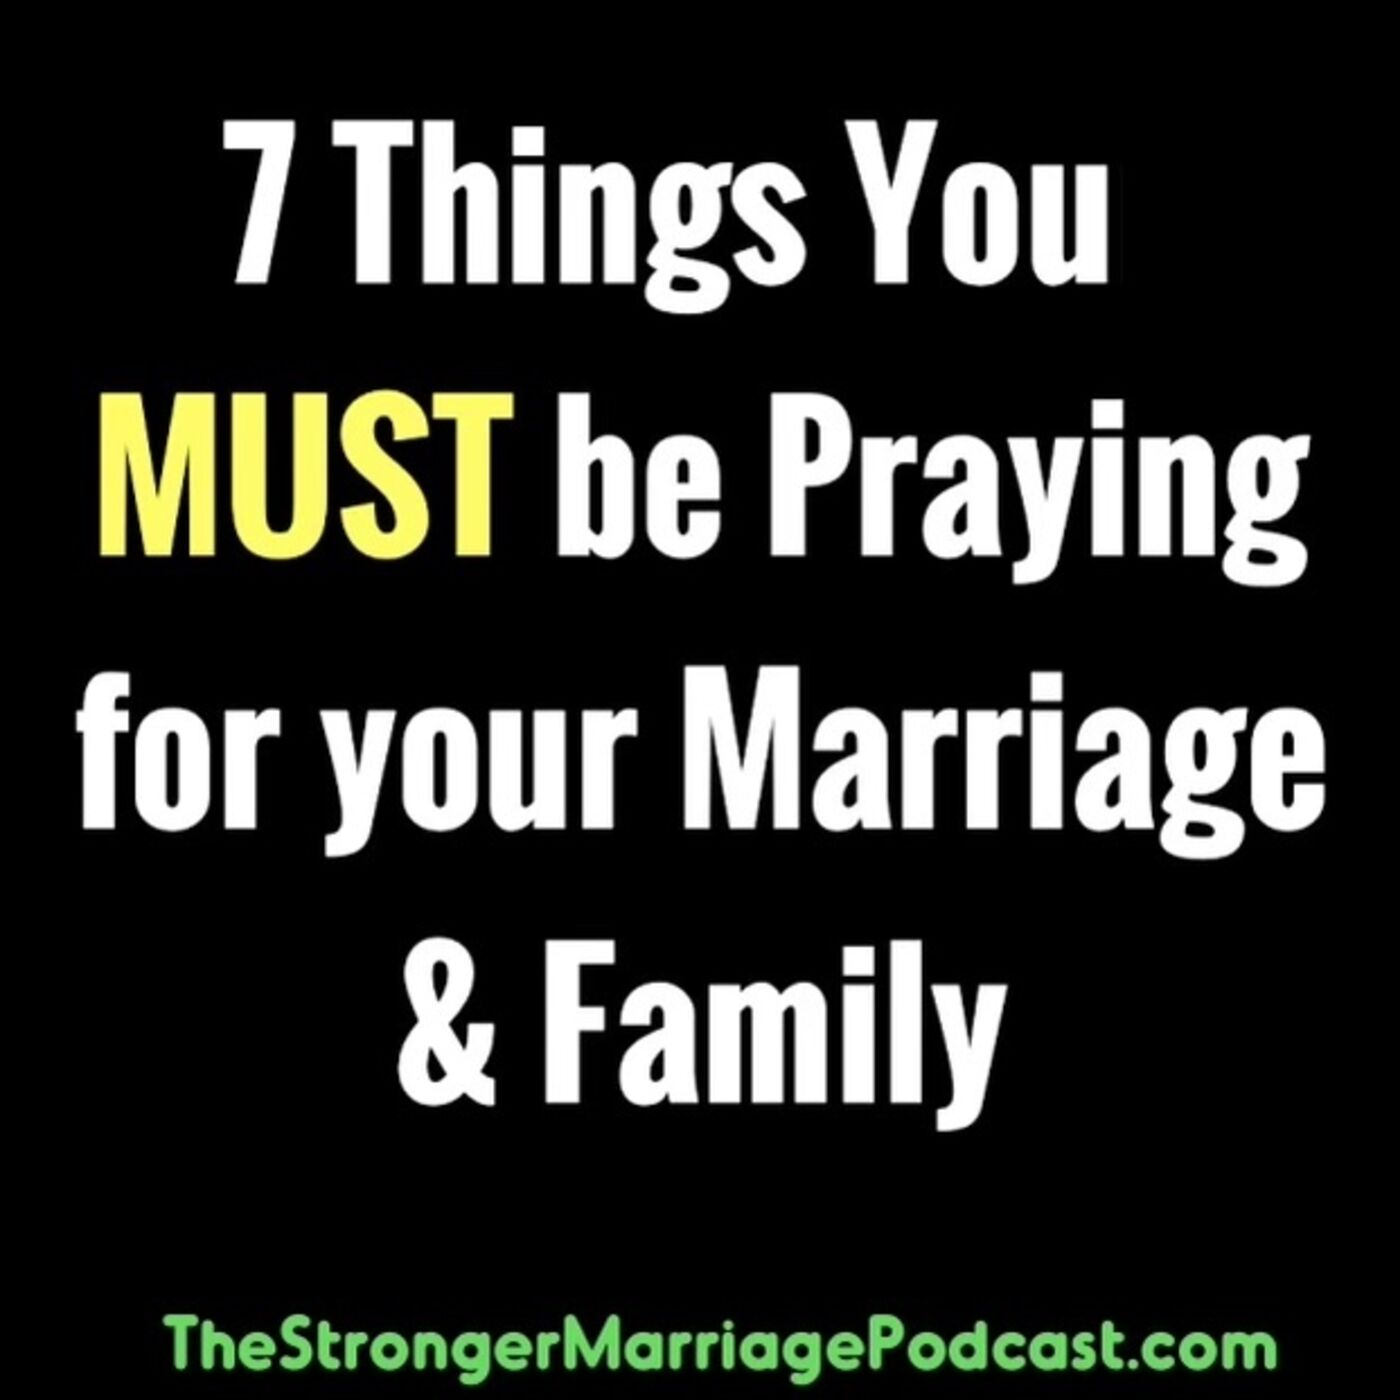 7 Things You MUST Be Praying For Your Marriage & Family